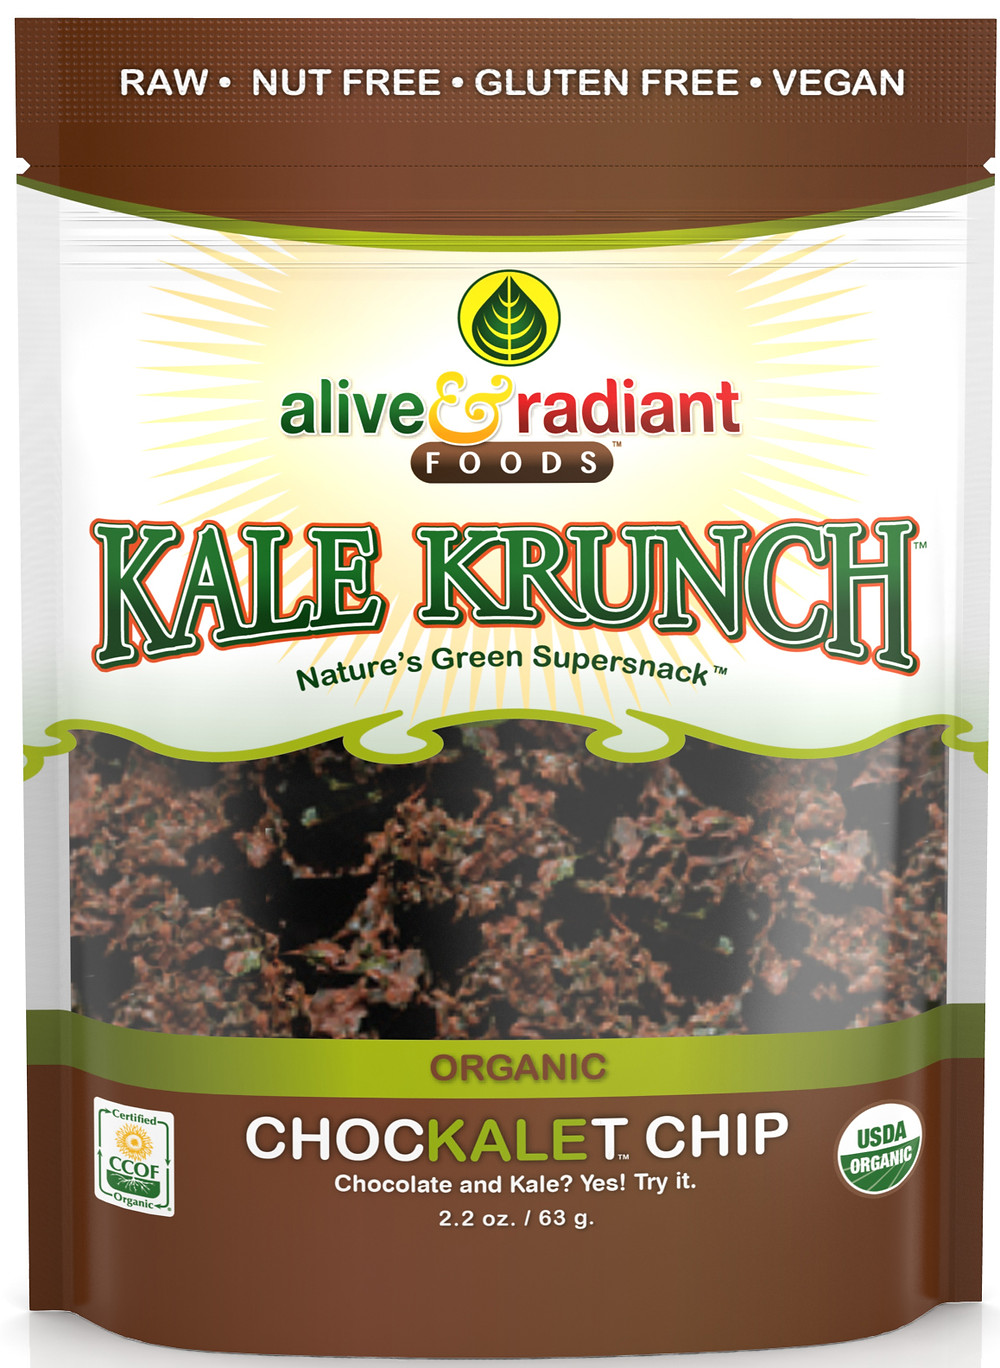 Chocolate Chip Kale Krunch